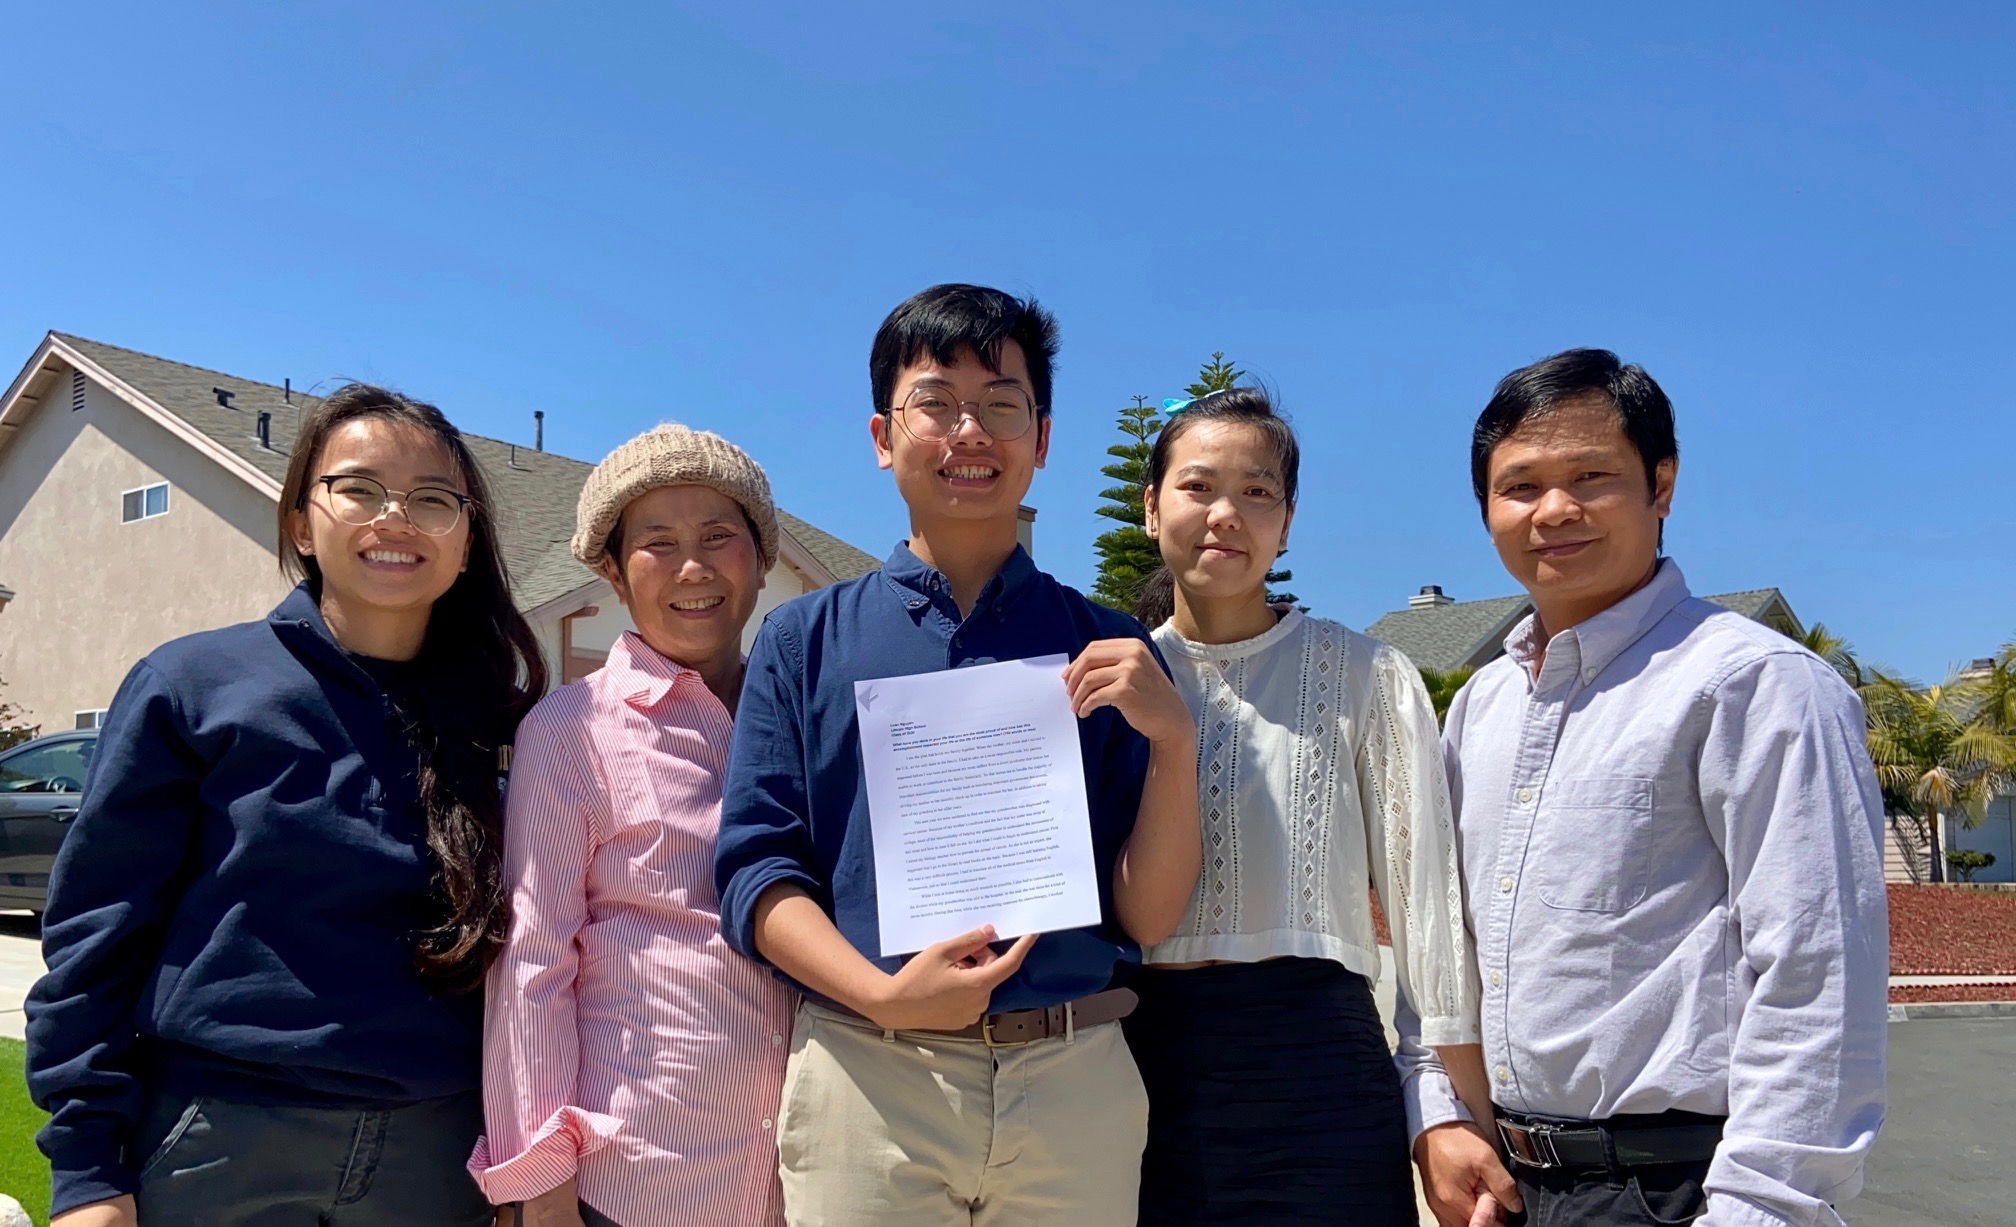 Billy Nguyen Wins 8th Annual Essay Contest